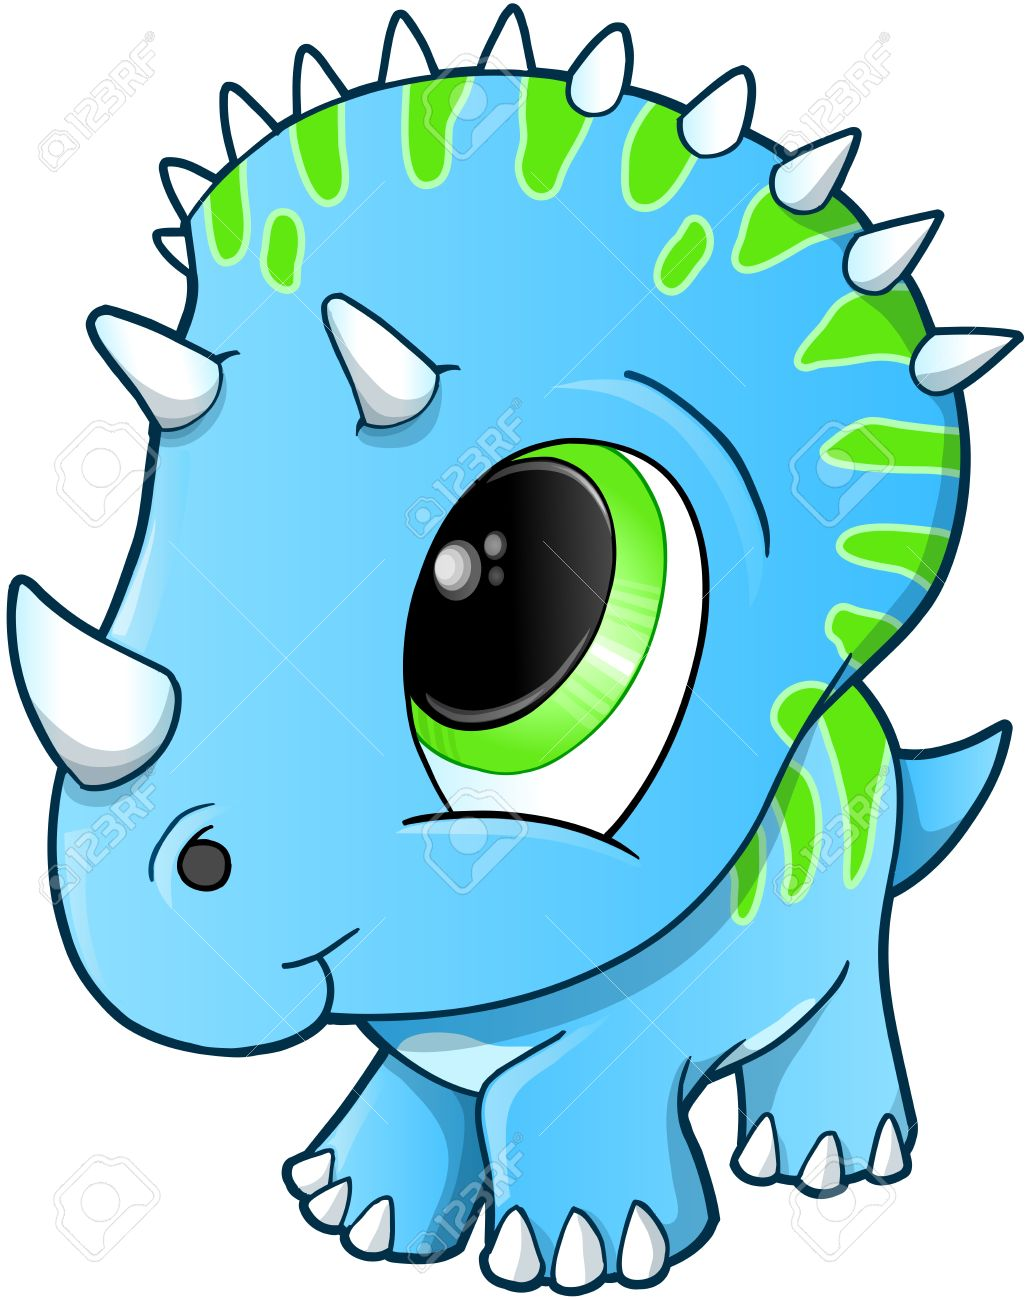 1027x1300 Cute Baby Triceratops Dinosaur Illustration Royalty Free Cliparts